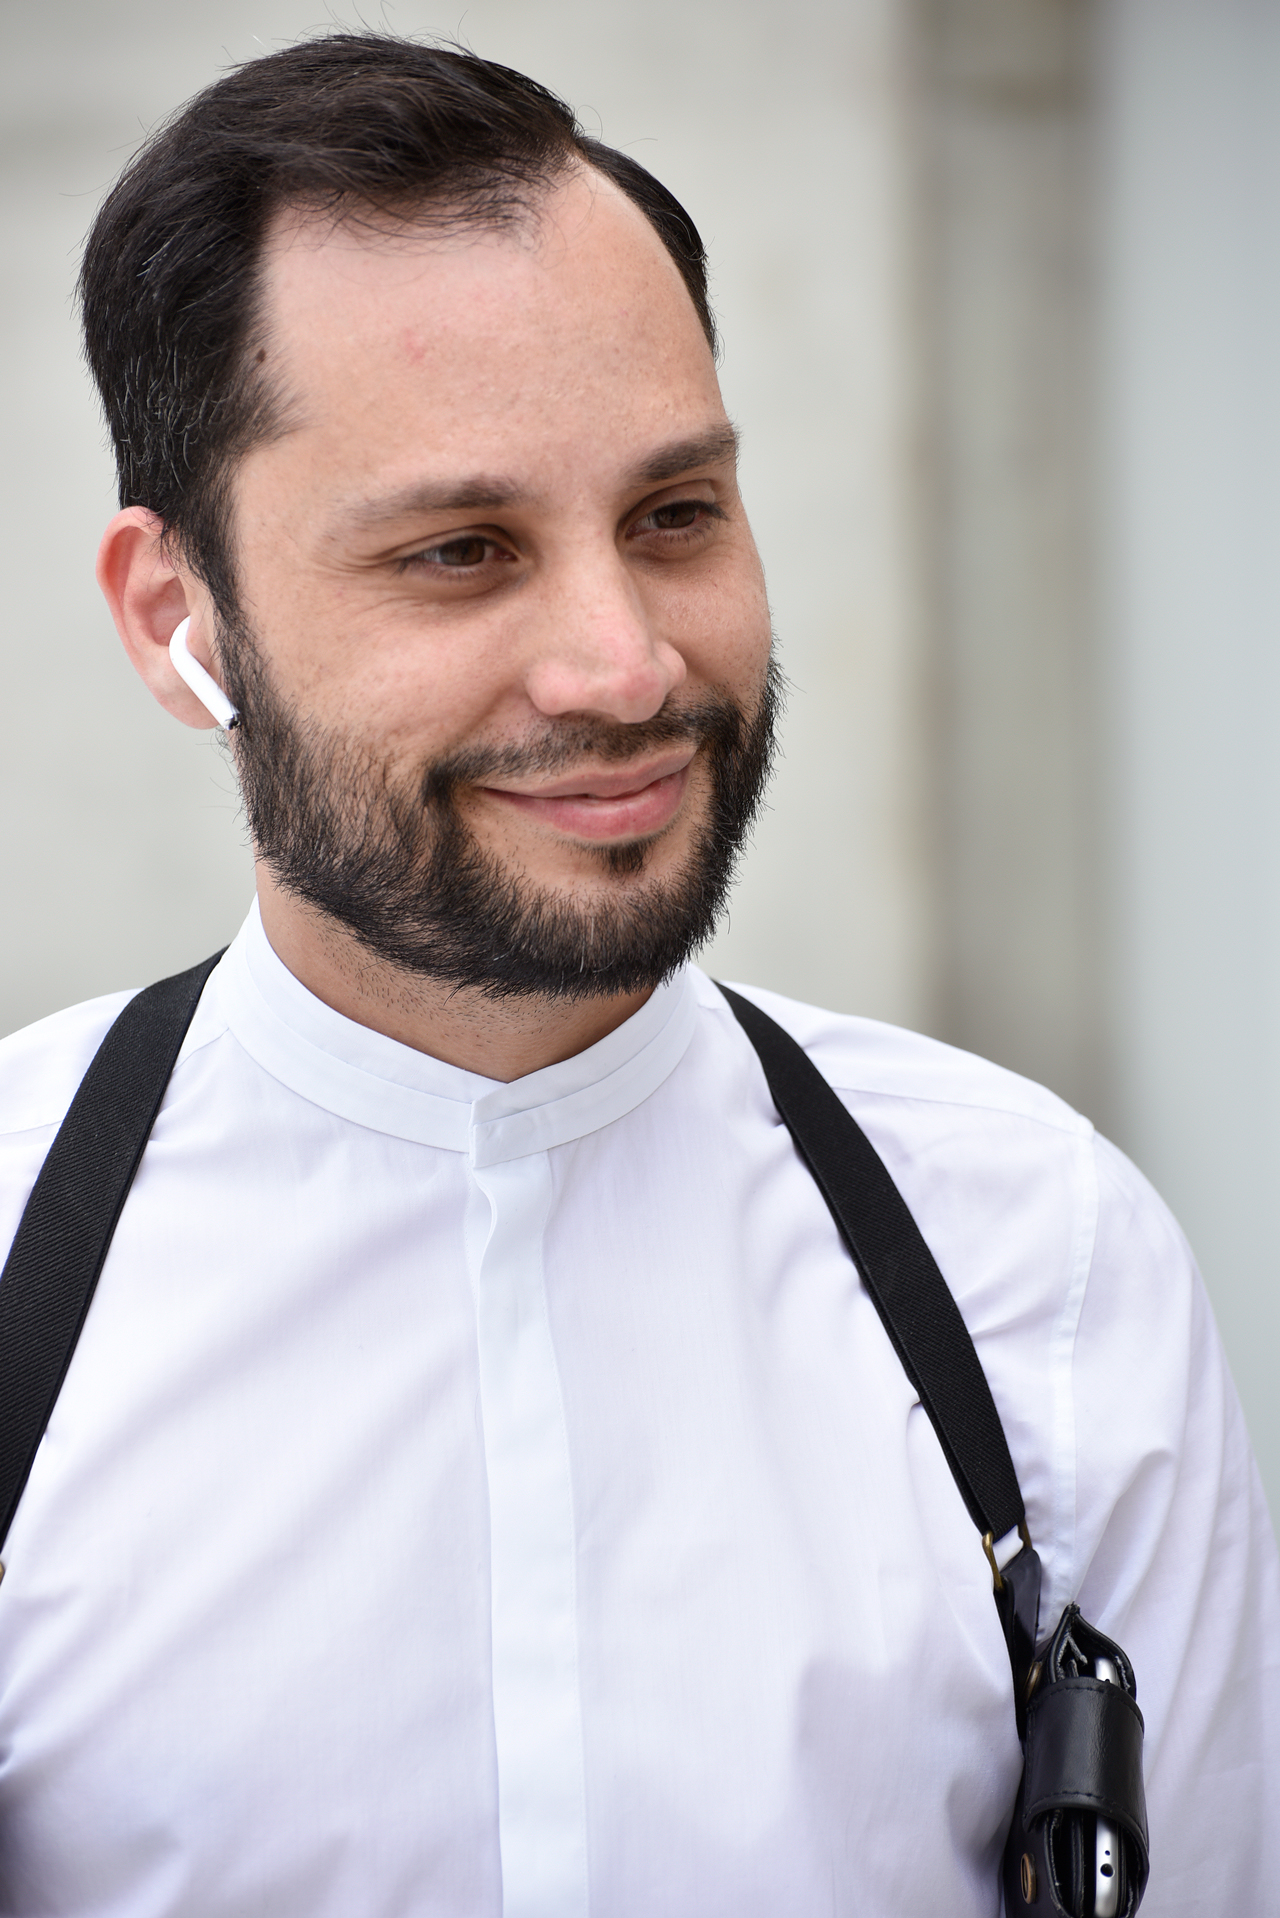 Ricardo Ferrer - Founder & CEO PEYRic was born in Venezuela, occasionally went to school in the US and moved to Germany after graduation. Here he has lived and worked for the last 12 years.As co-founder of Hafven (Coworking and Maker Space), VRTX Labs (Augmented Reality), PEY (Bitcoin & Blockchain) and 533 AG (Investment), Ric is involved in a variety of projects.Privately, he loves cooking and enjoys spending time with his family and friends. Ric is an advocate of the so-called transhumanism and wants by his work to promote decentralization. With the help of new technologies, Ric wants to help shape, advance and improve the future of humanity.